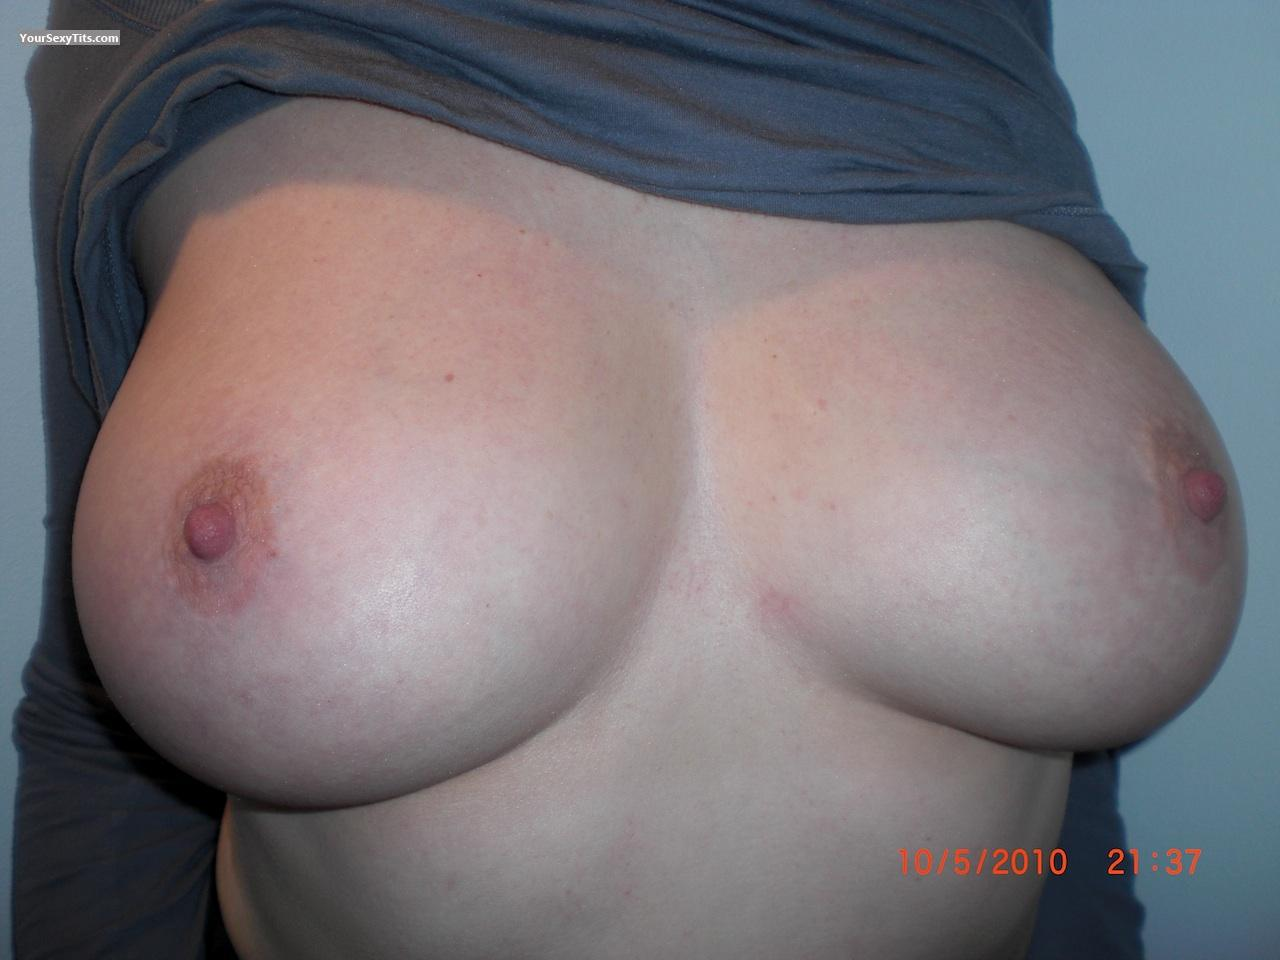 Tit Flash: Big Tits - Jen Again from Australia